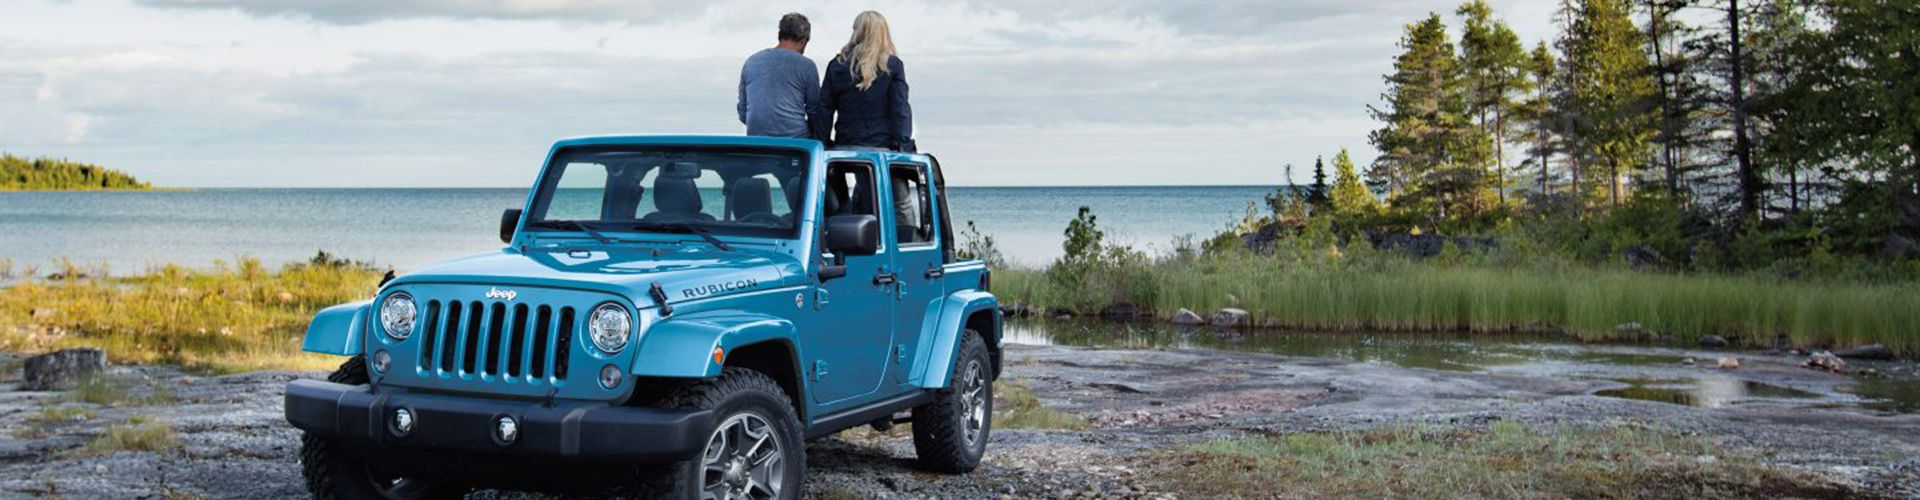 Rent a Car in Crete - Jeeps & SUVs - Rent yours now